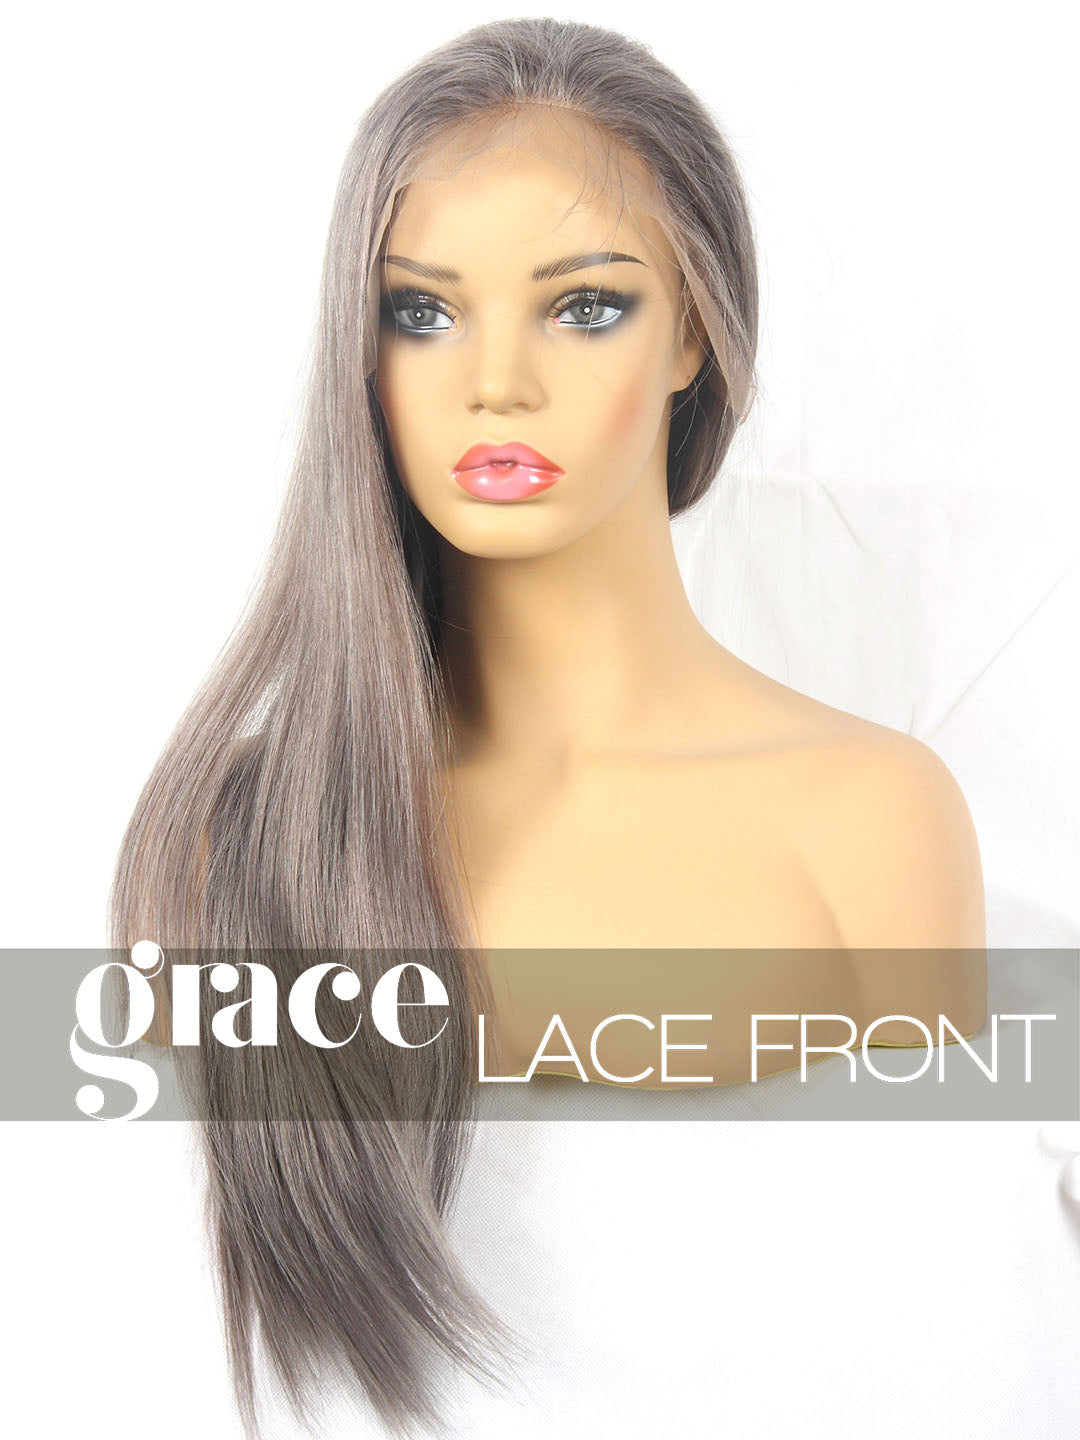 CLEARANCE LACE FRONT WIG: Ash Gray- Virgin Malaysian, Medium, Straight, 20